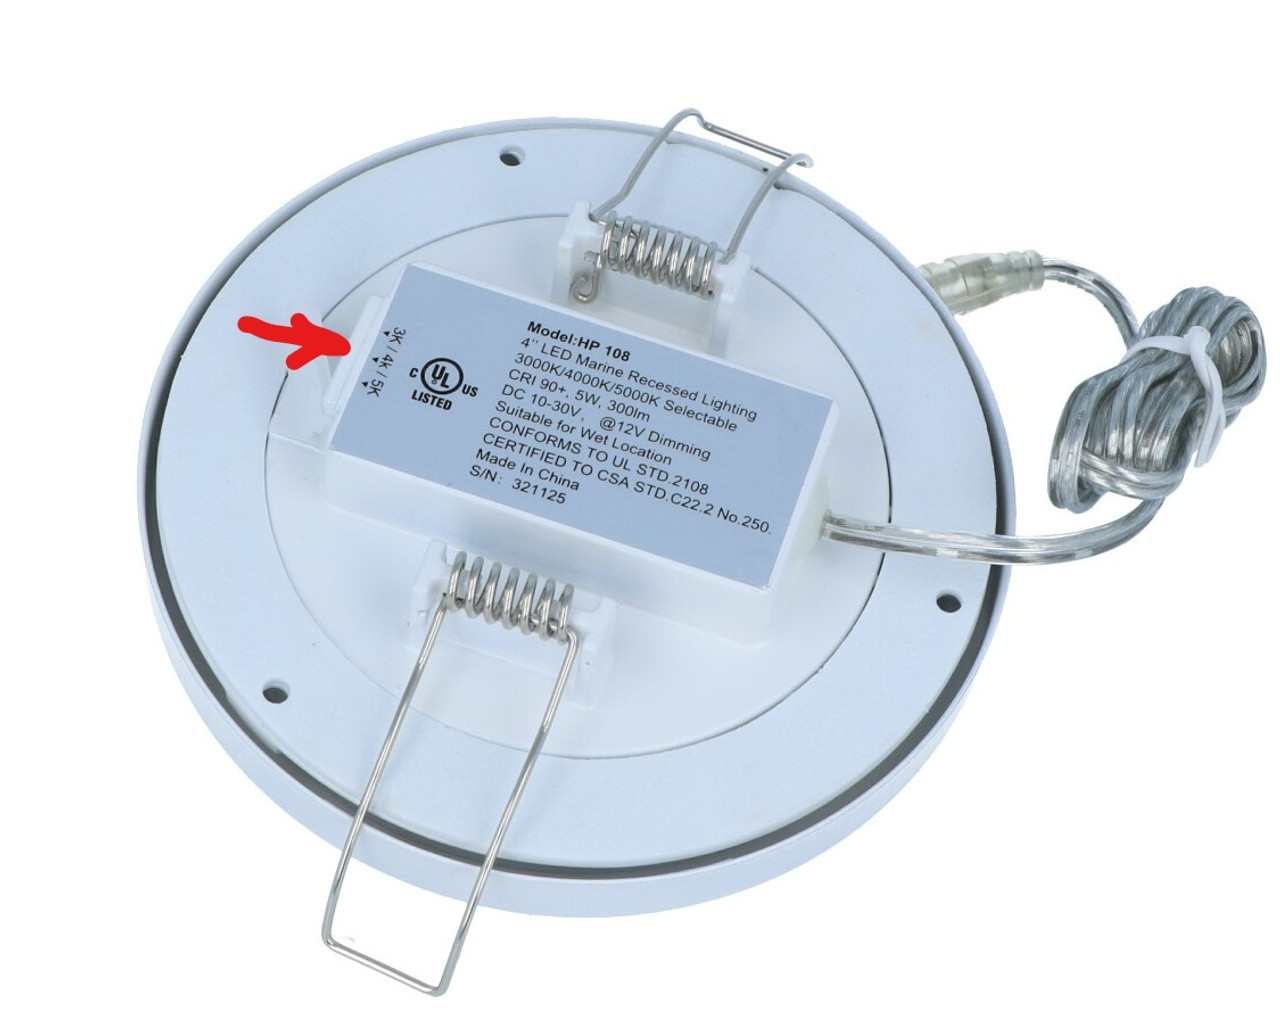 ML-6 AND ML-7 DOWNLIGHT SERIES:  W/SELECTABLE 3000K,4000K,5000K & RBW